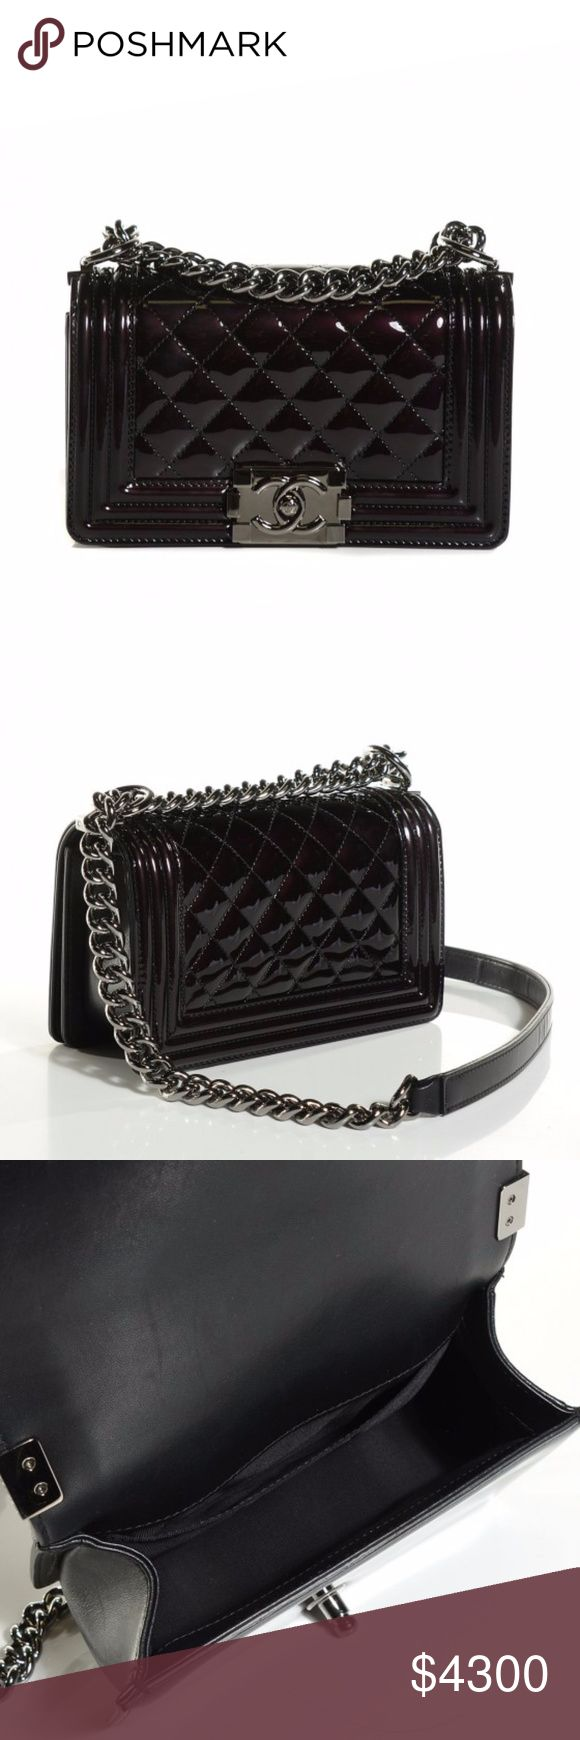 "Chanel ""Le Boy"" Small Black Quilted Patent Leather Crafted from black diamond quilted patent leather, this enviable Boy flap bag features a chunky chain link strap with shoulder pad, CC Boy logo push-lock closure, and gunmetal-tone hardware accents opens to a black fabric-lined interior with side slip pocket perfect for your bare essentials.  Like-New with no-known flaws. Protective film on interior side of buckle Accessories: Authenticity card, tag, protective bag. Sorry, no box Handle Drop…"